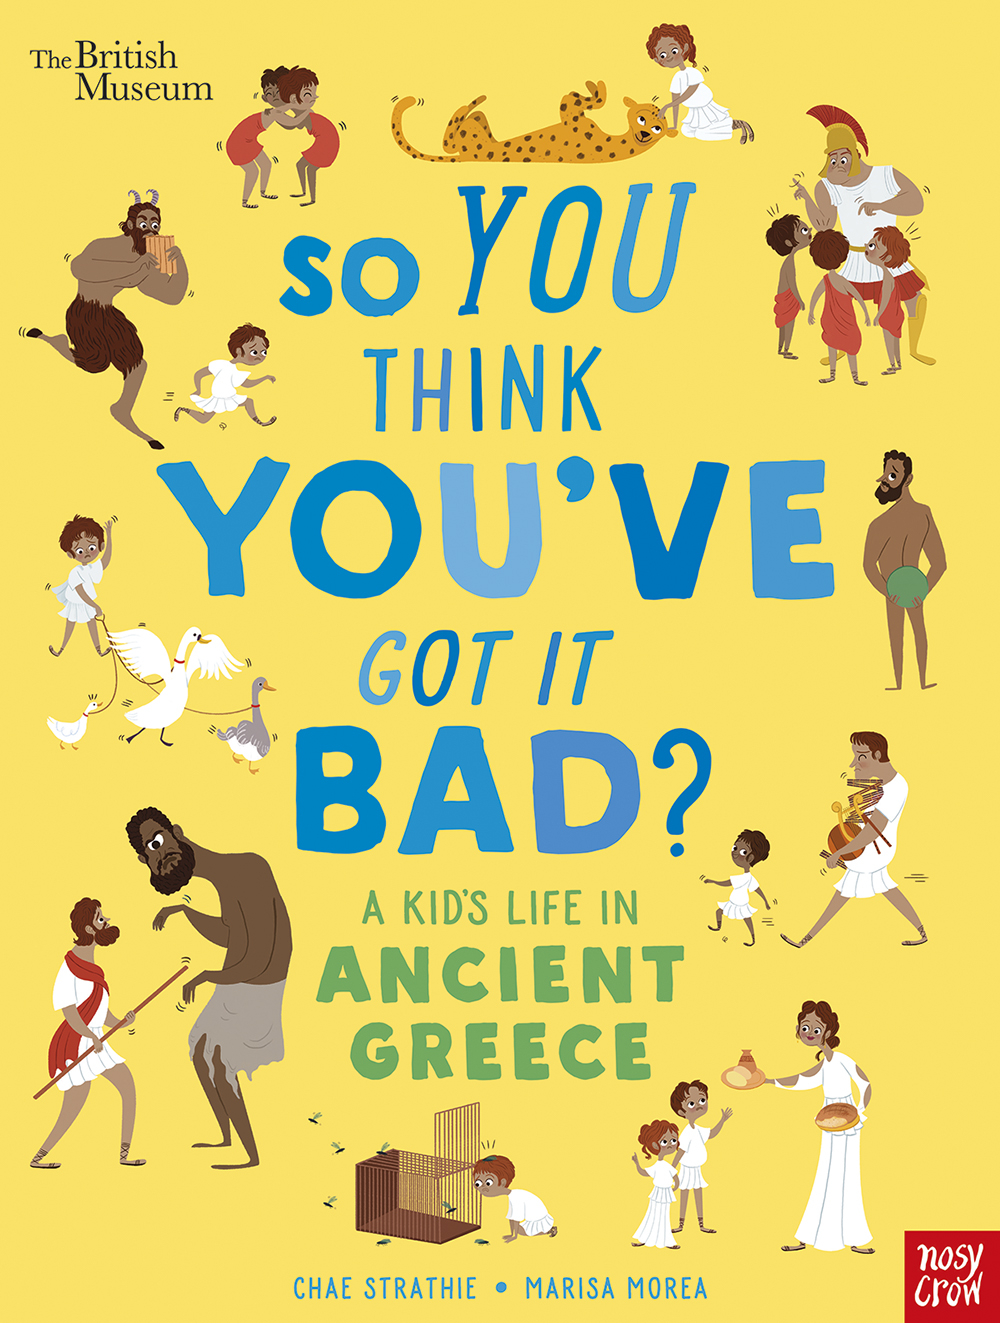 british-museum-so-you-think-youve-got-it-bad-a-kids-life-in-ancient-greece-478112-1